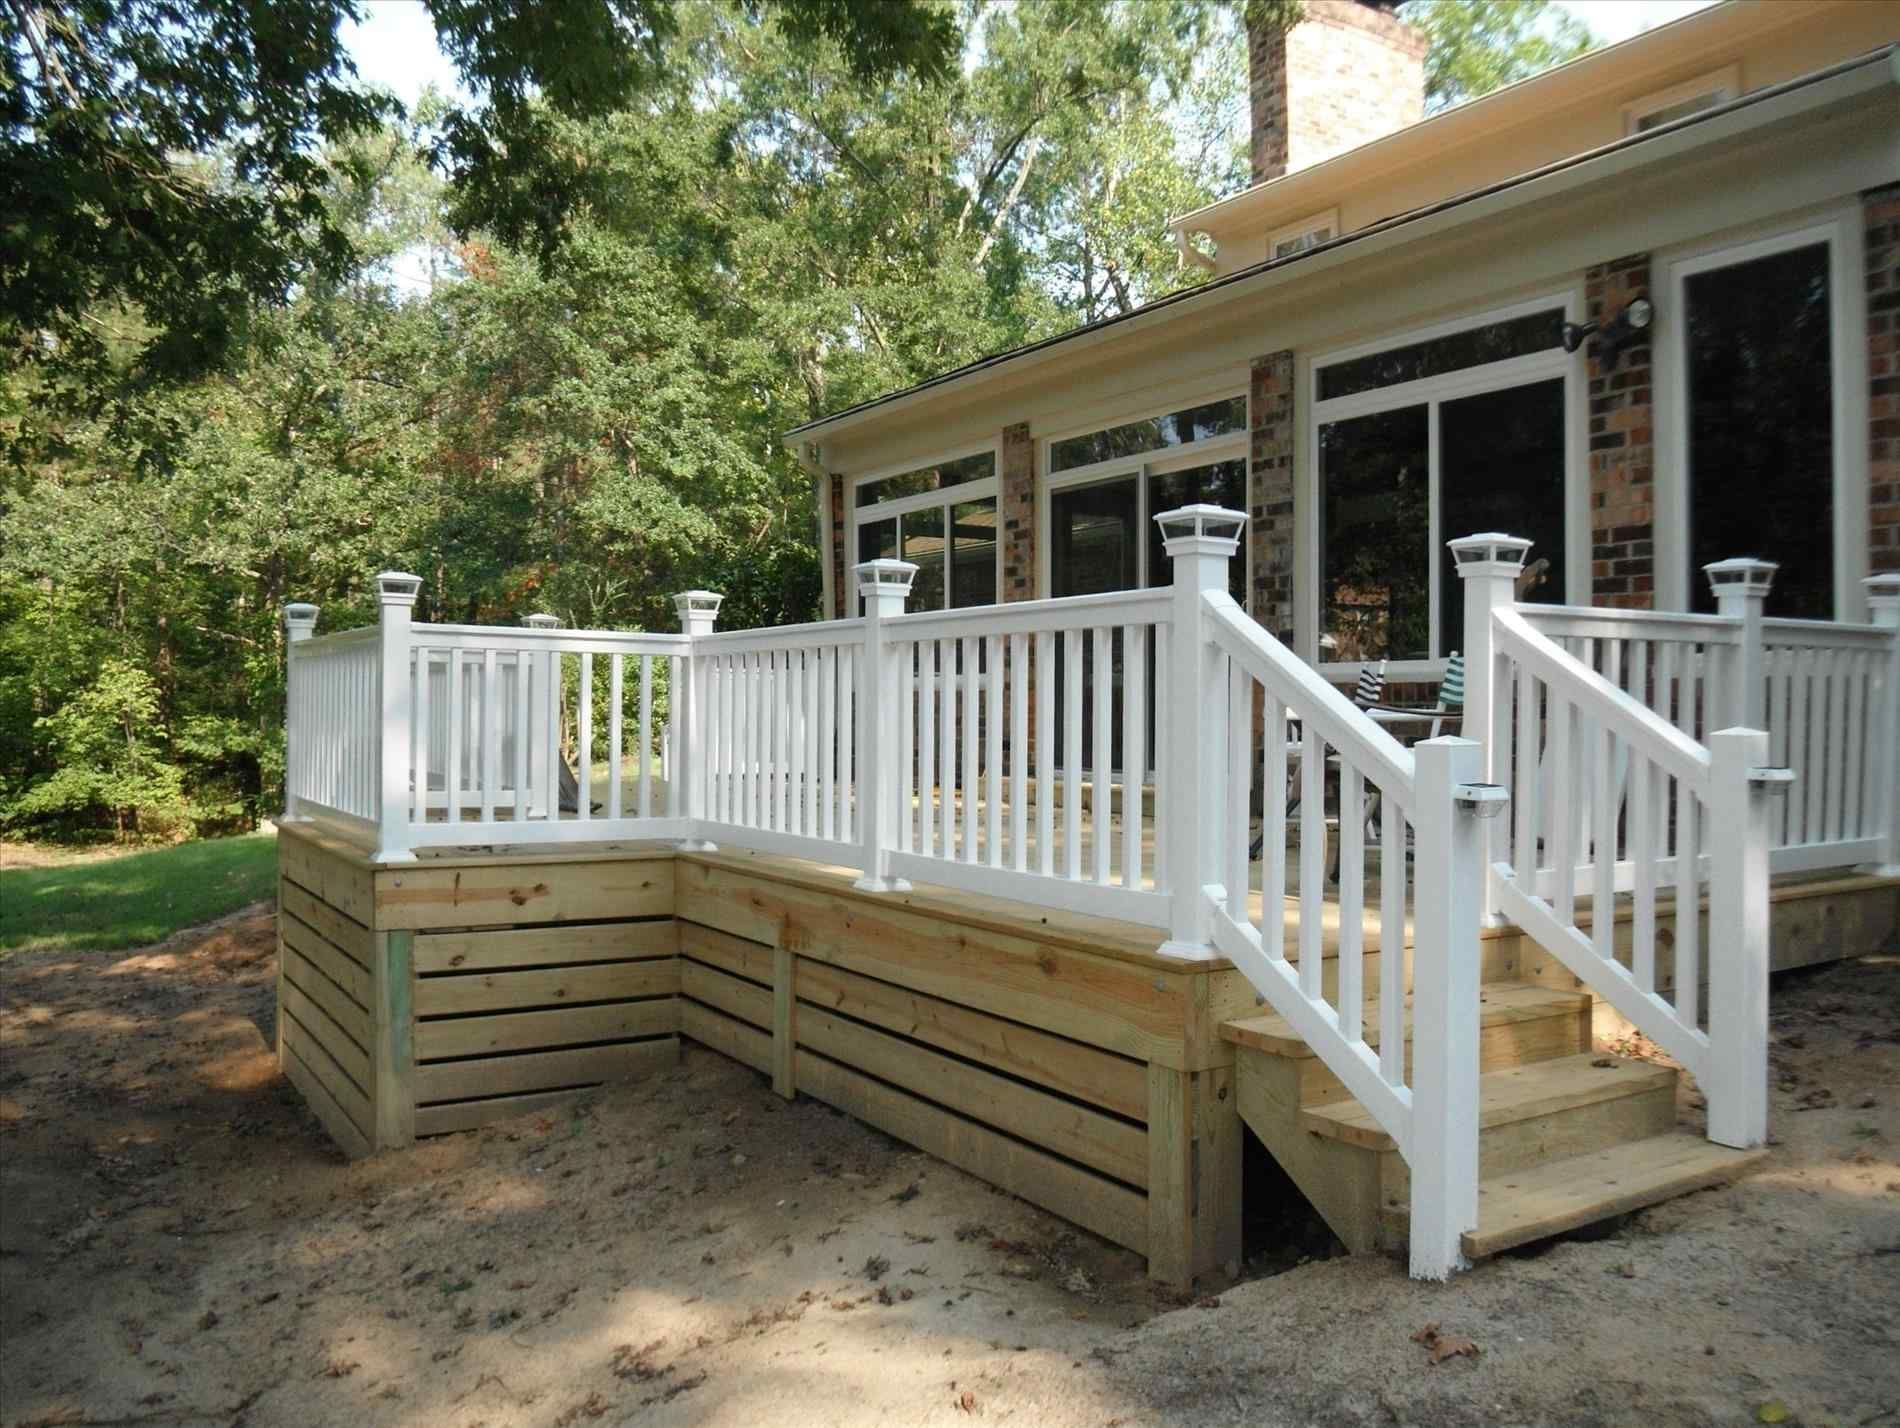 Deck Skirting Is A Material Attached To Support Post And Boards